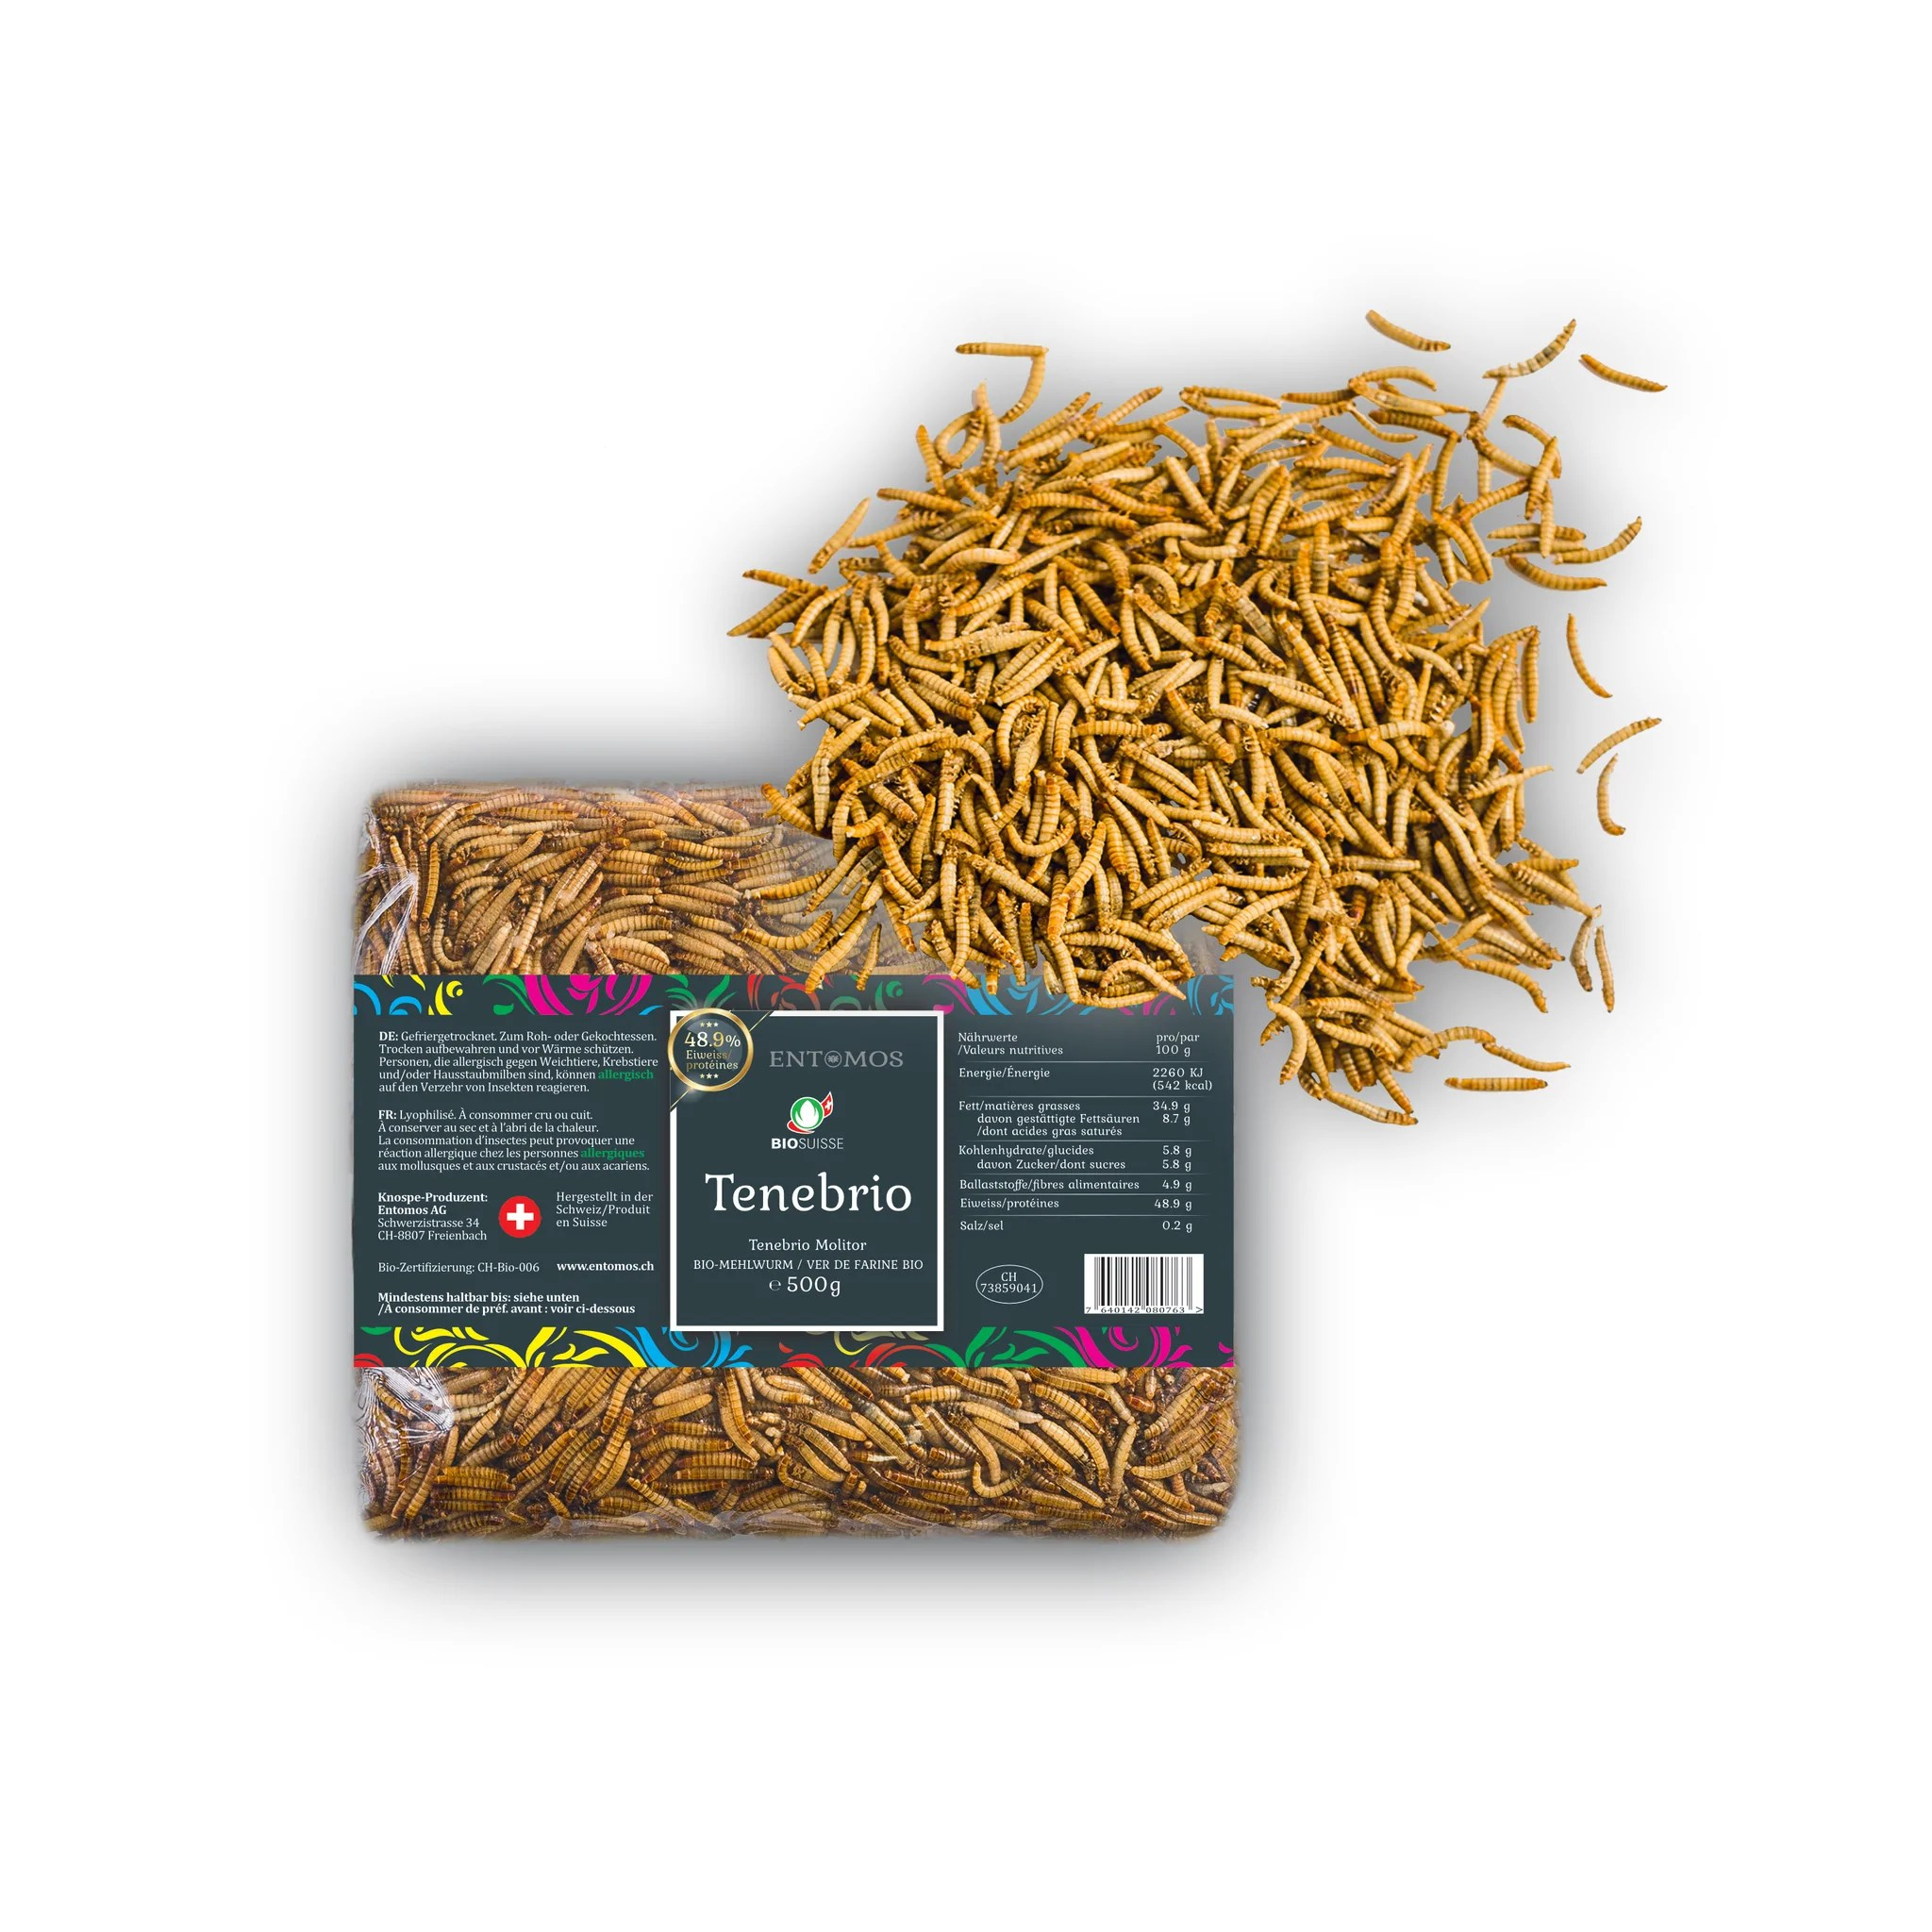 Hausstaubmilben Organic Edible Mealworms Lyophilized Tenebrio Molitor Swiss Production